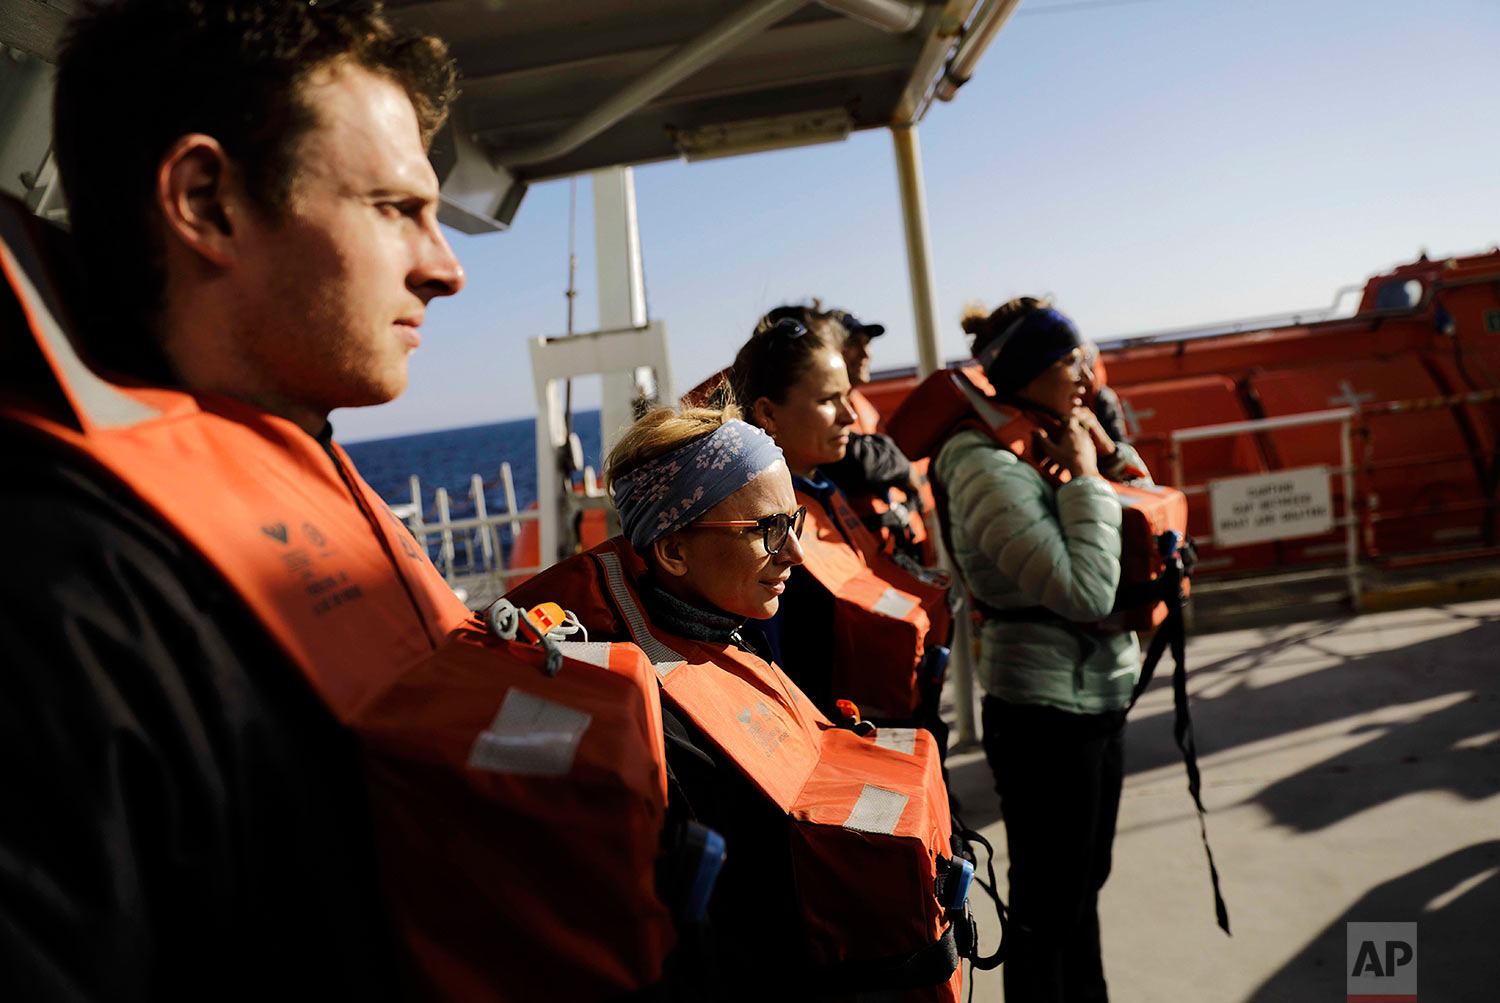 Researchers Scott Joblin, from left, and Ilona Mettiainen, wear life vests during a safety drill with fellow personnel aboard the Finnish icebreaker MSV Nordica as it sails the North Pacific Ocean to traverse the Arctic's Northwest Passage, Thursday, July 6, 2017. (AP Photo/David Goldman)